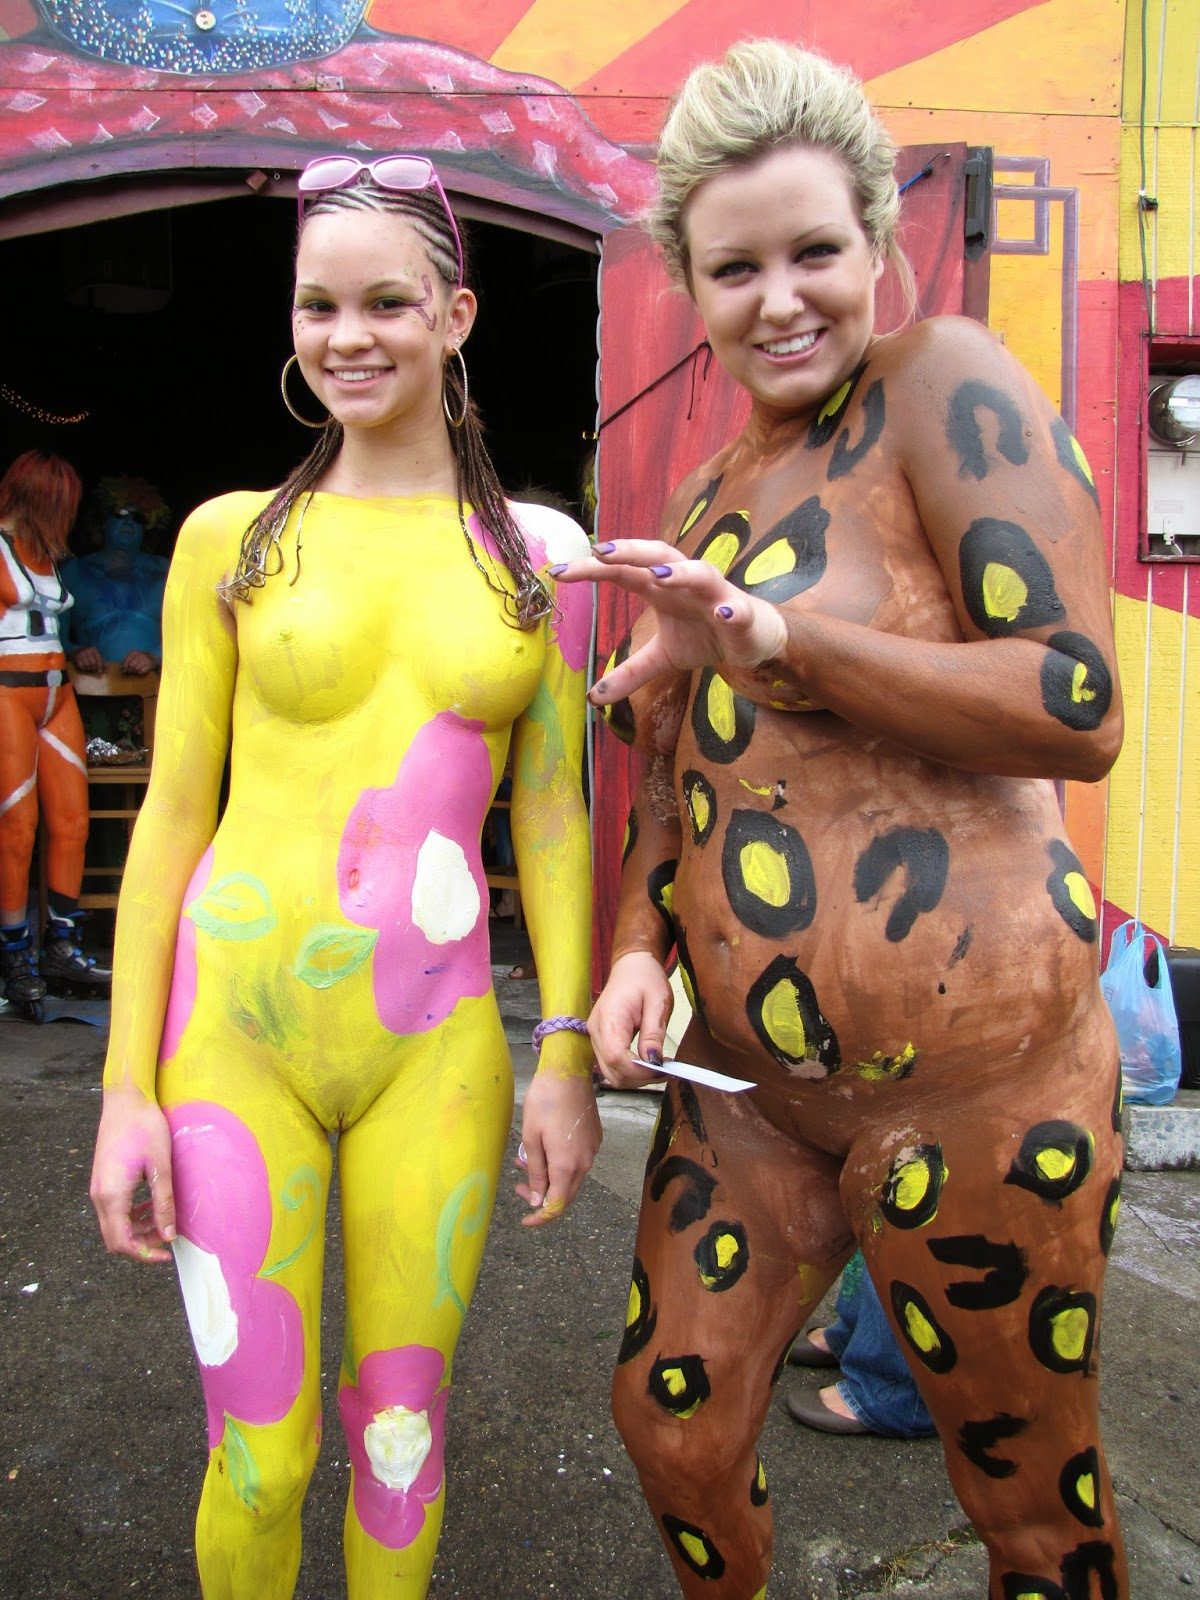 For Body paint nude girls opinion you